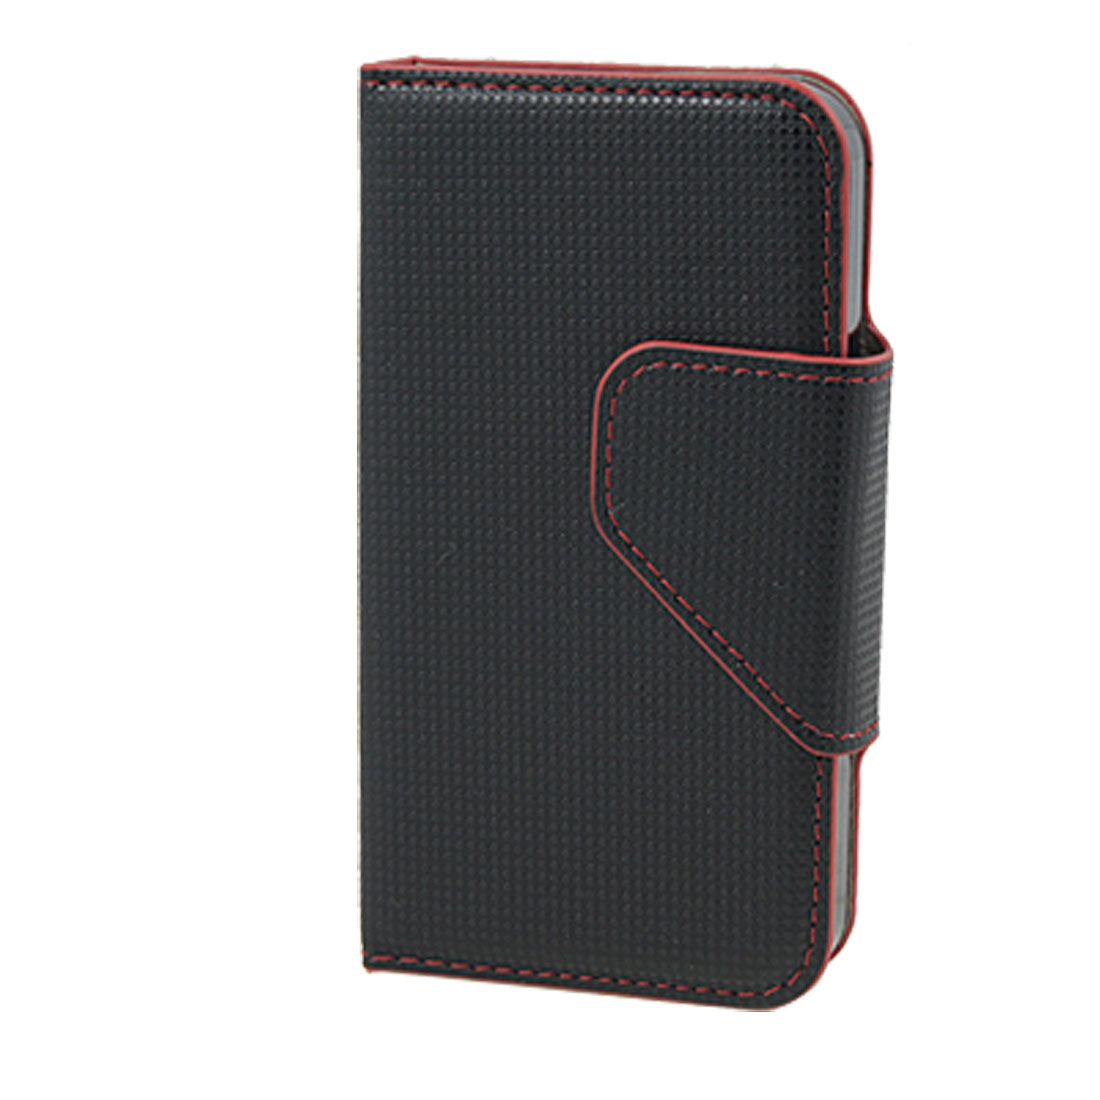 Magnetic Flap Vertical Faux Leather Black Red Pouch for iPhone 4 4G